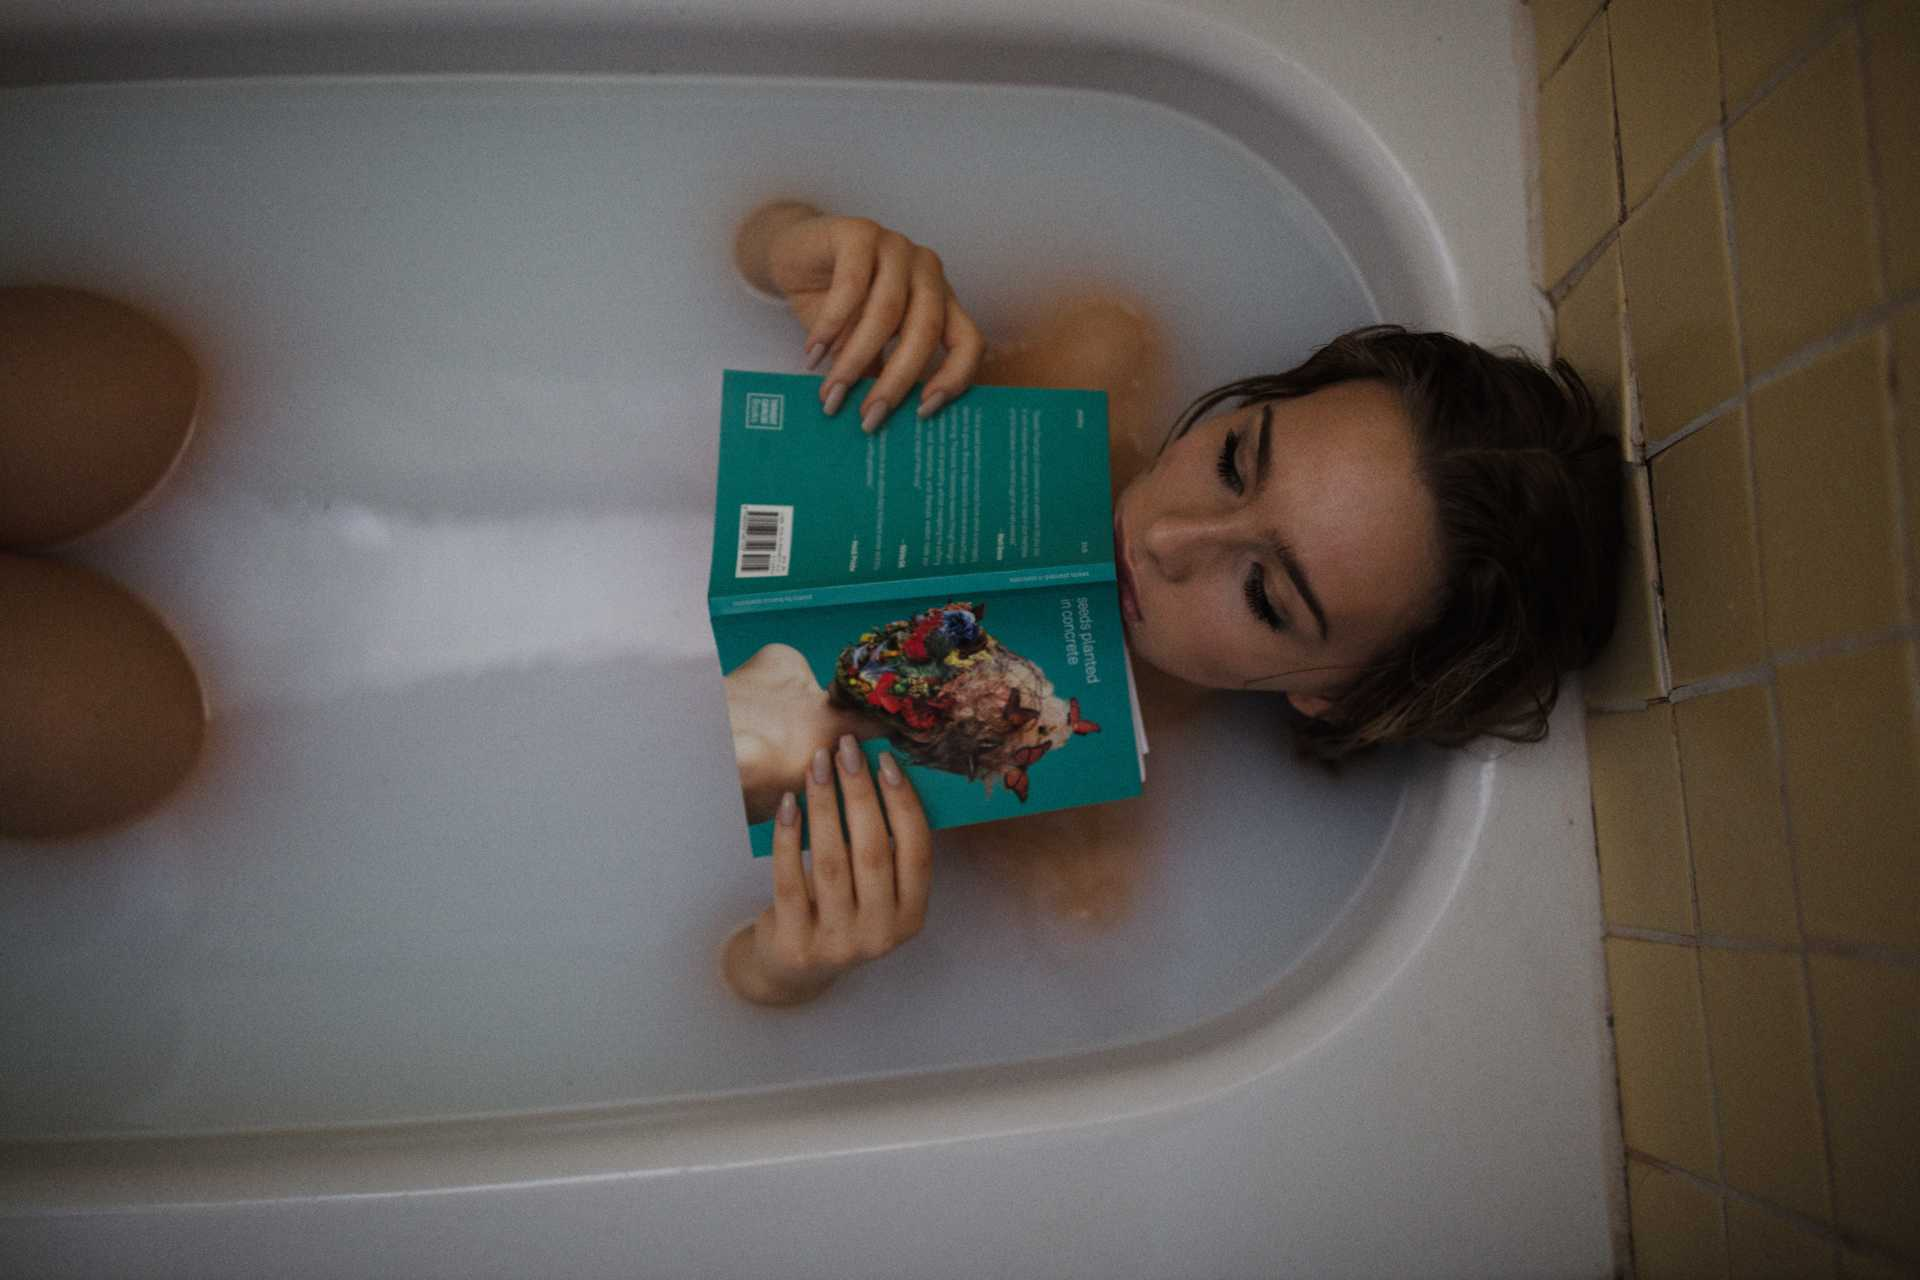 woman in tub with book, thinking about STI treatment